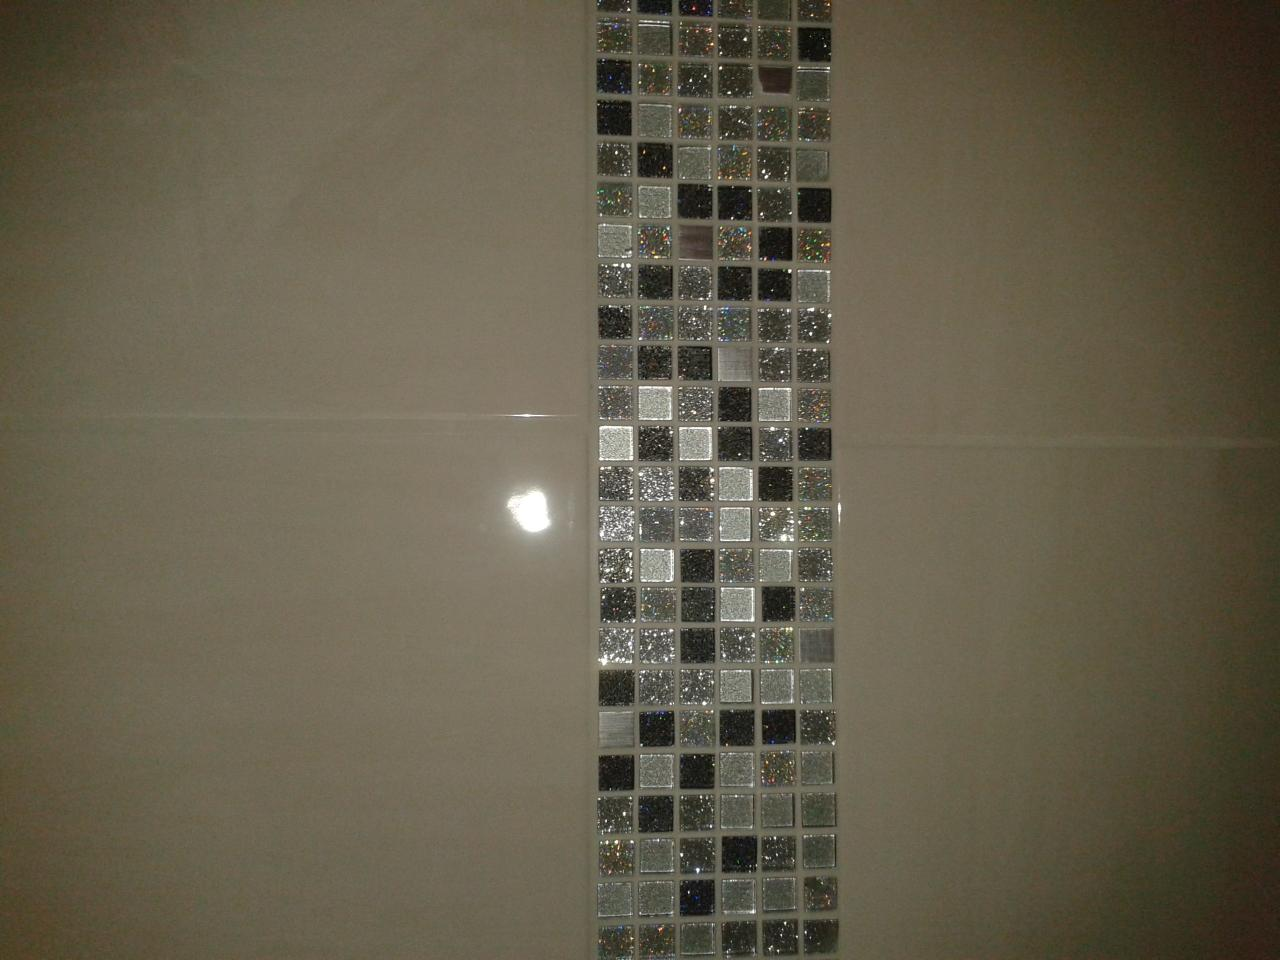 Comment faire une mosaique en carrelage maison design for Mosaique salle de bain italienne